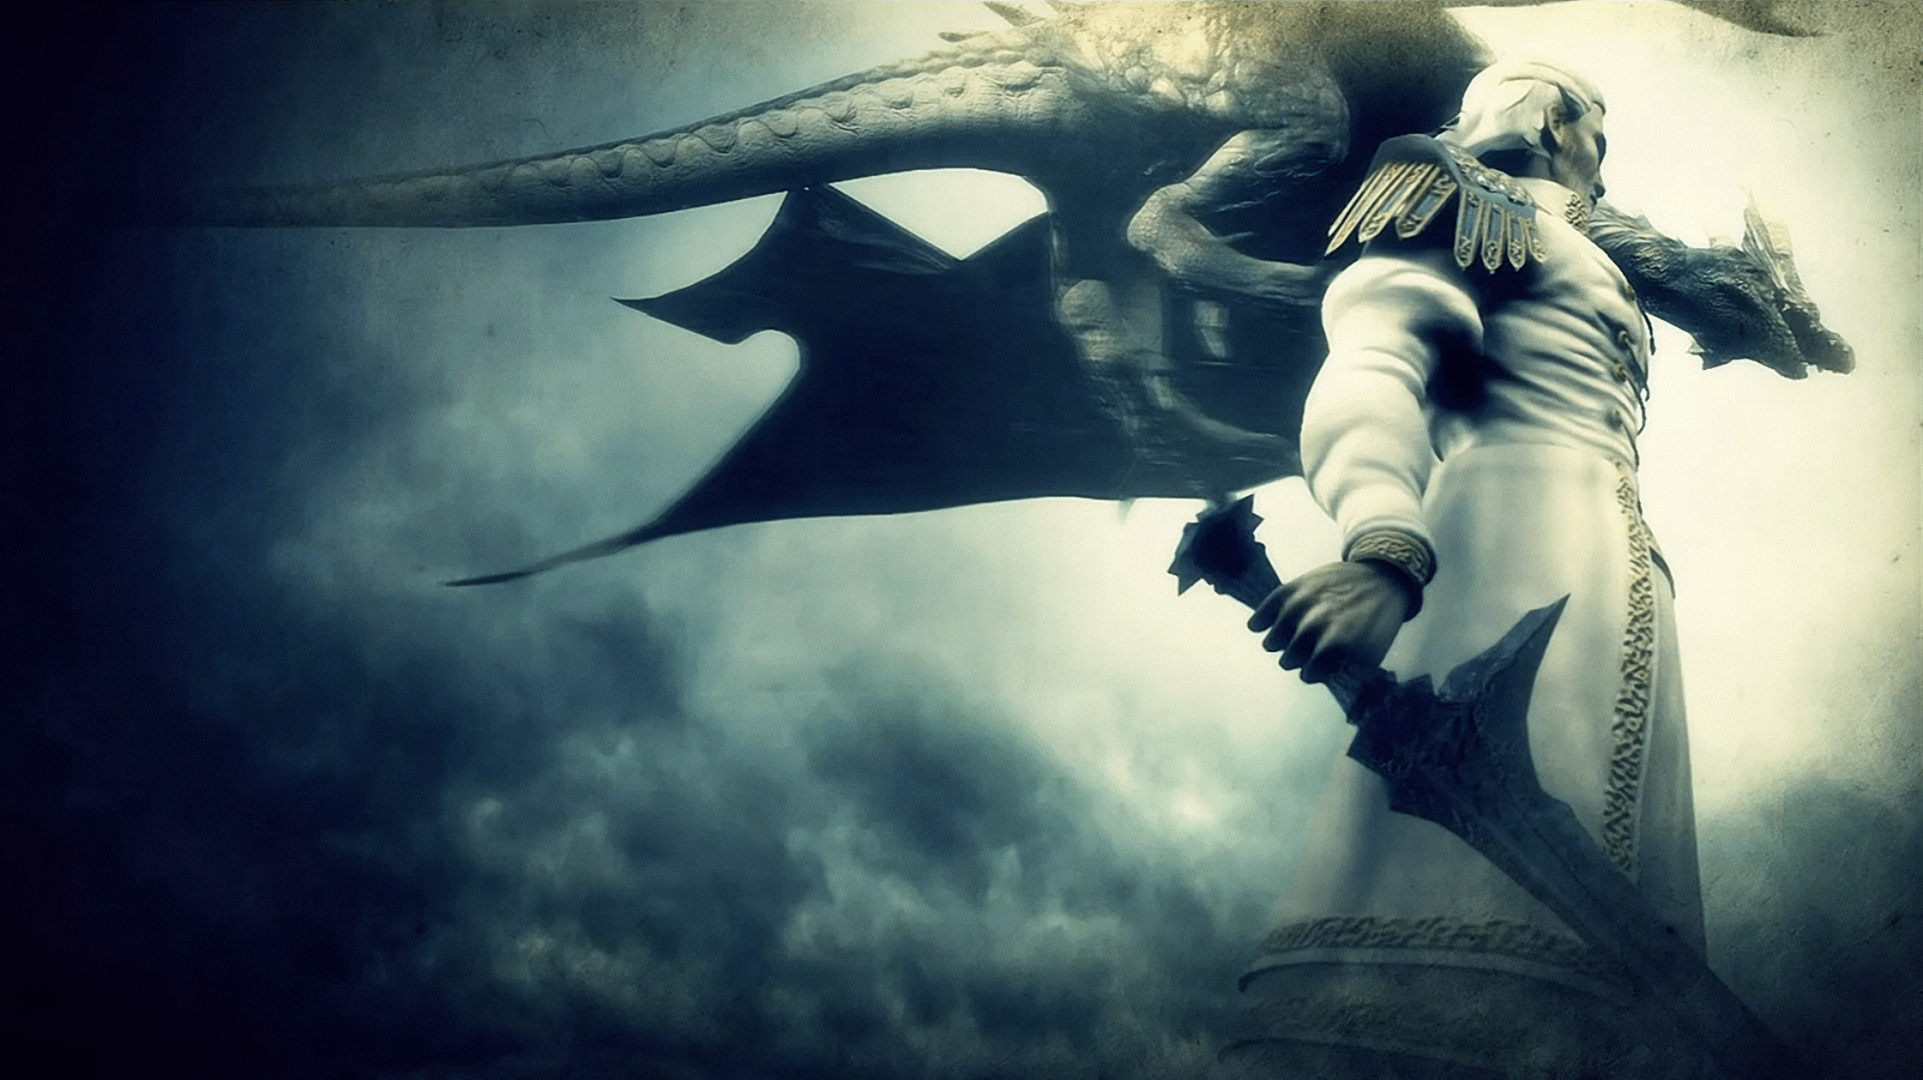 Demon's Souls HD Wallpapers and Backgrounds Image